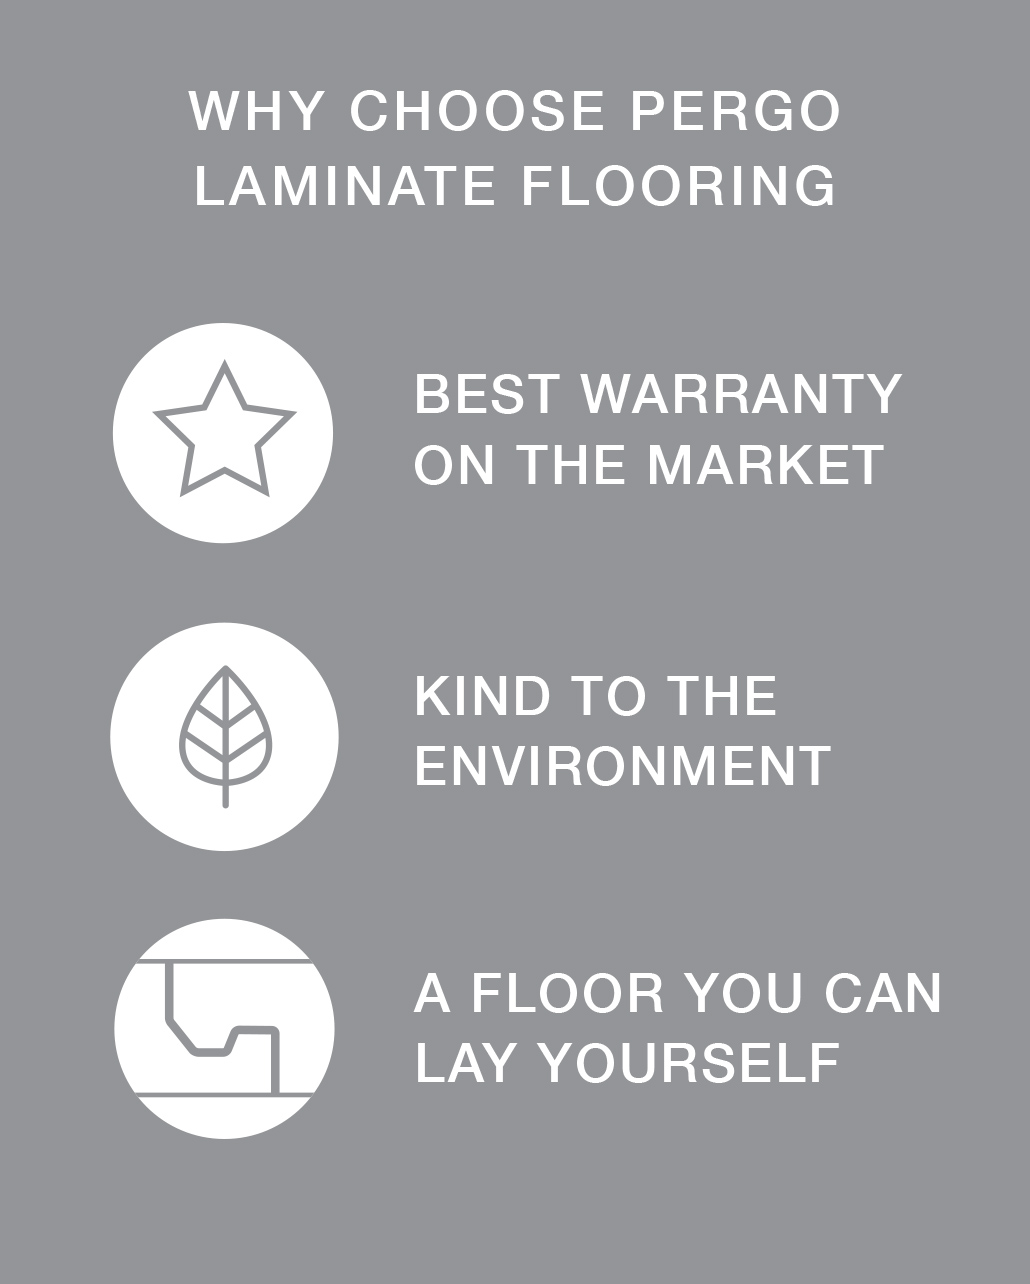 Why choose a laminate floor from Pergo